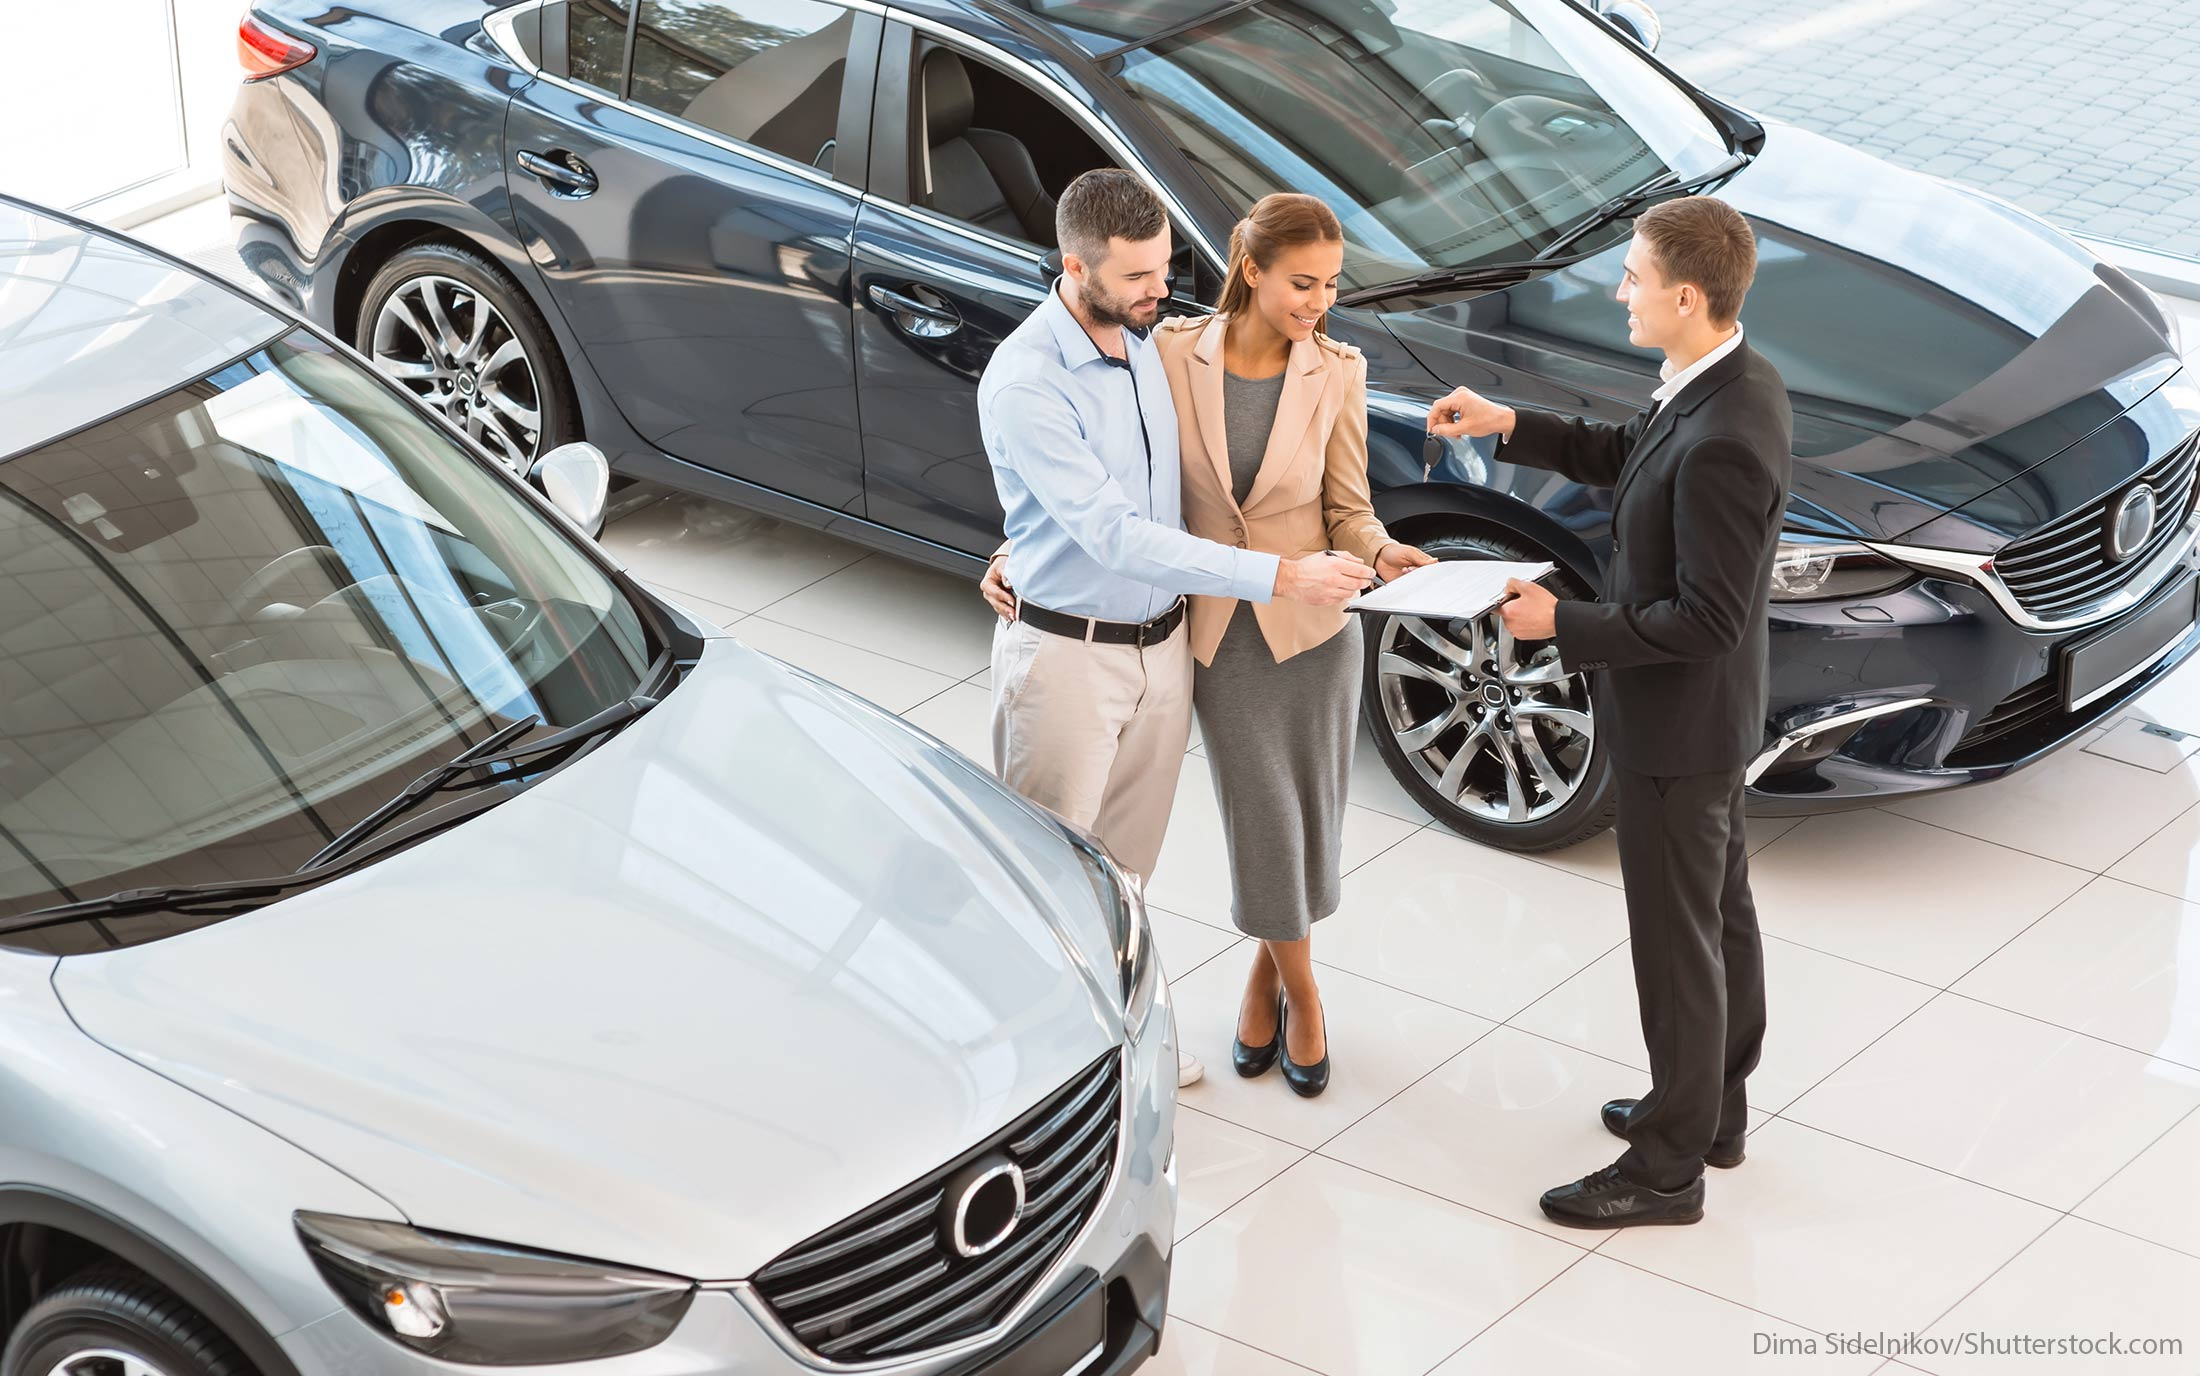 Buying a vehicle in Spain